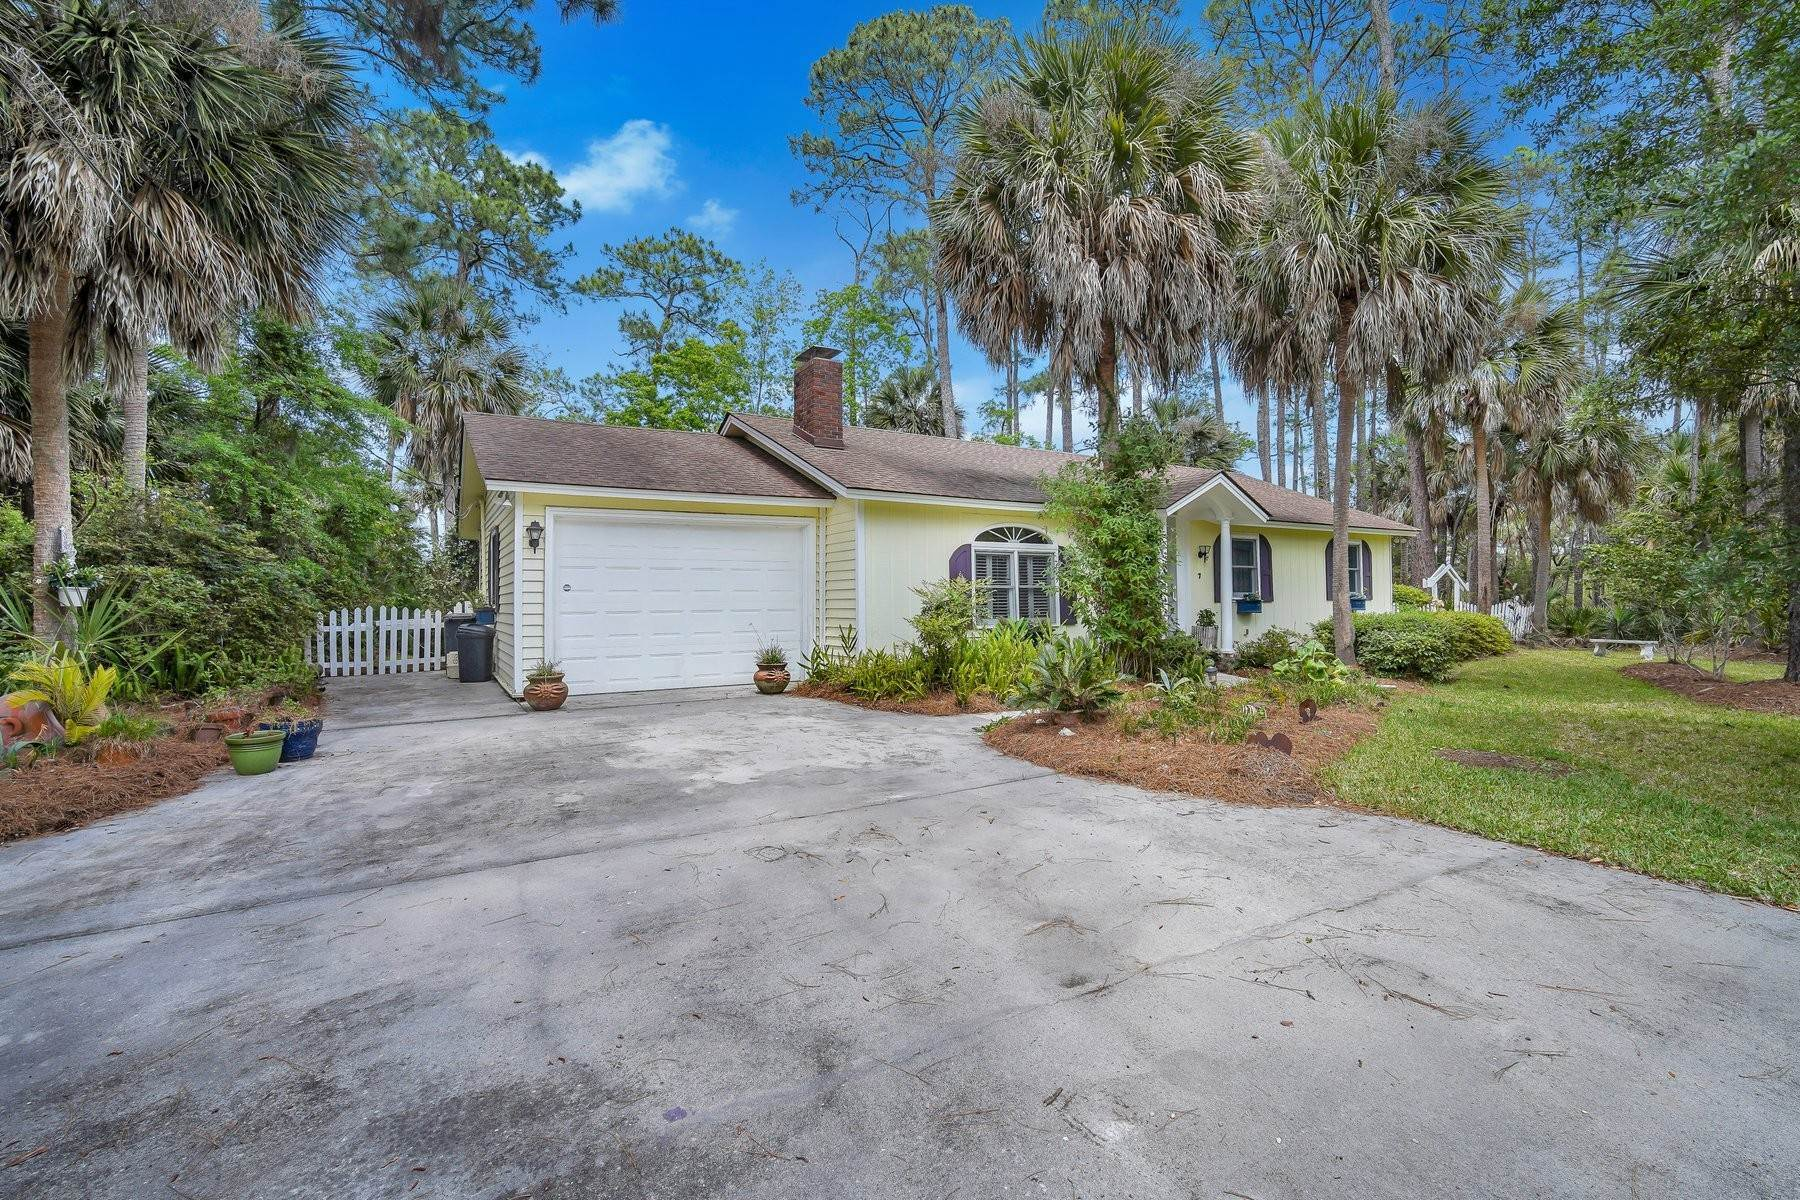 Single Family Homes for Sale at Beautiful May River and Marsh Views 7 Driftwood Lane Bluffton, South Carolina 29910 United States